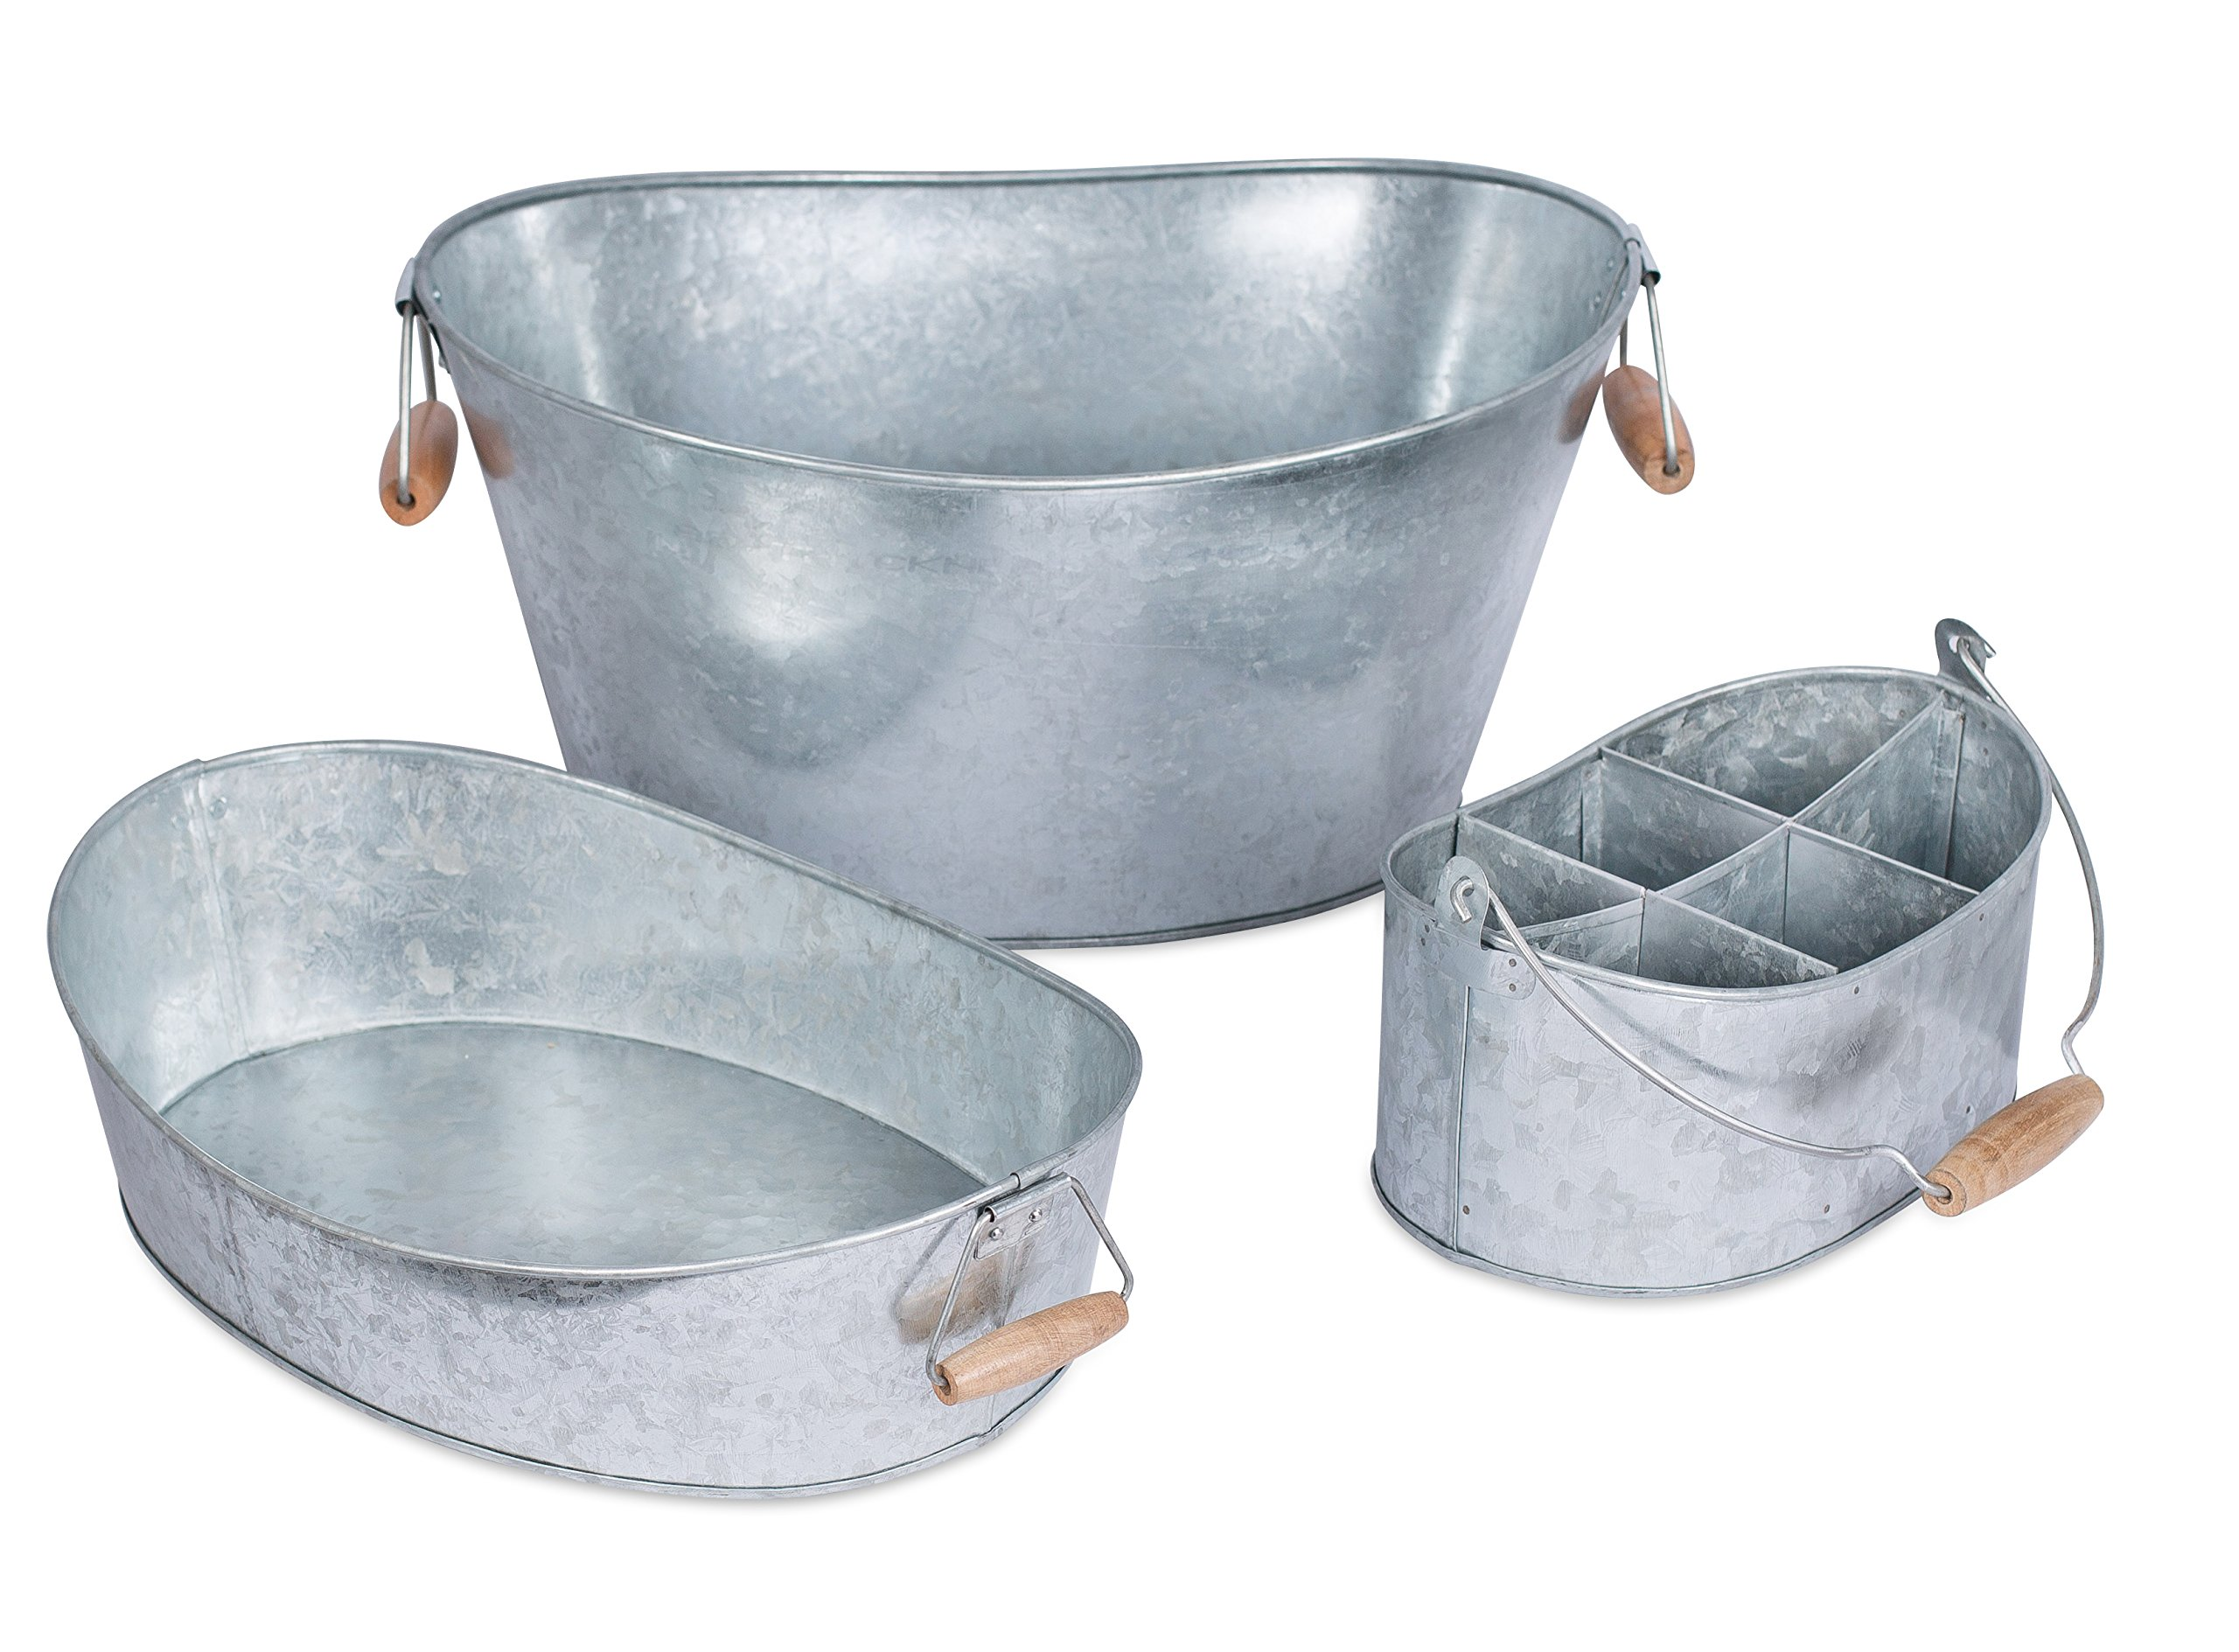 BirdRock Home Galvanized Beverage Tub, Caddy and Tray Set - 3 Piece - Party Tray Platter Drink Holder - Silverware Caddy - Wooden Handles by BirdRock Home Galvanized beverage tub w/ stand